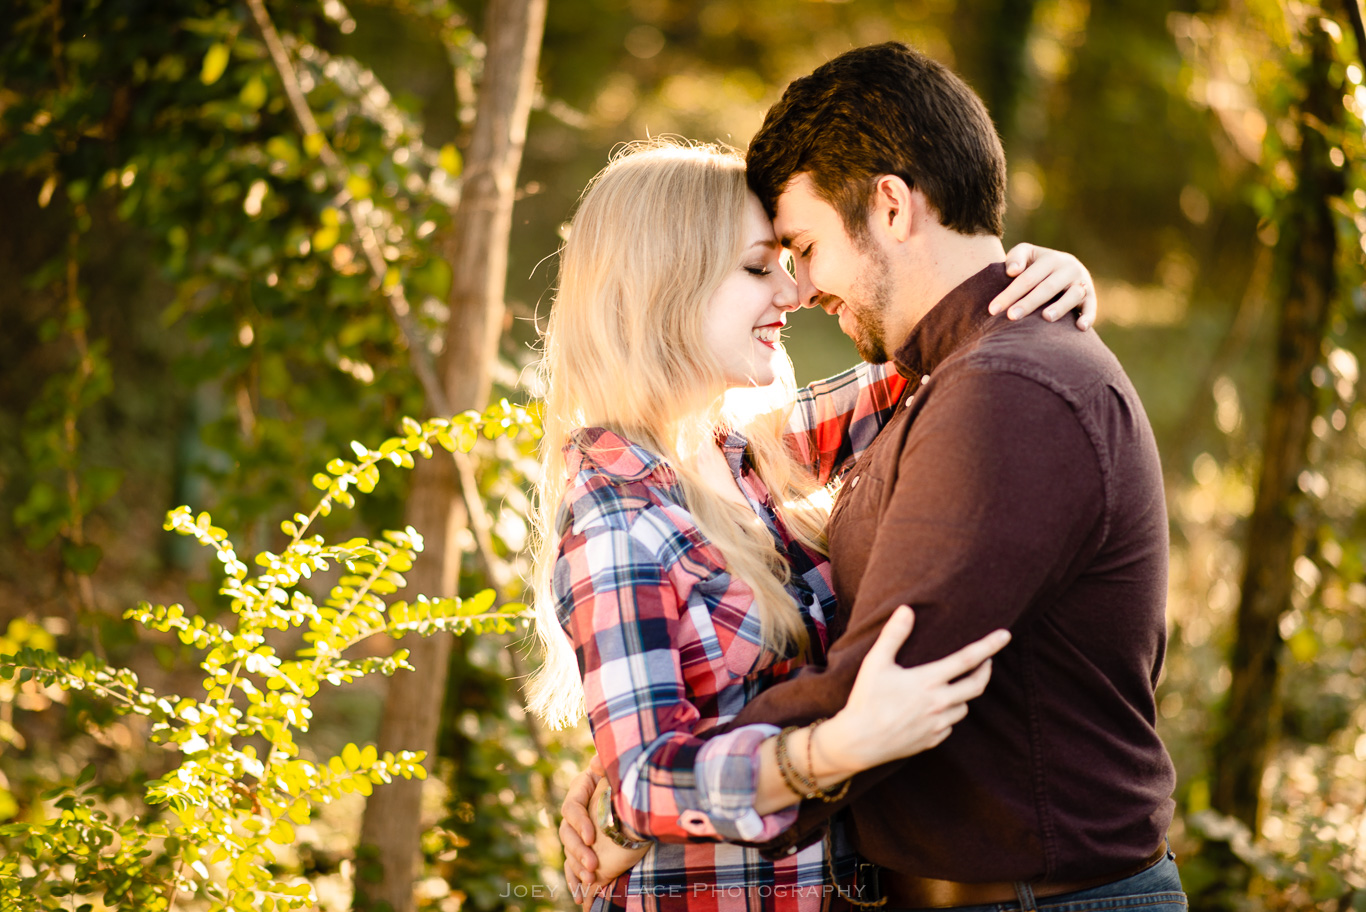 Engagement Session at Whittier Mill Park